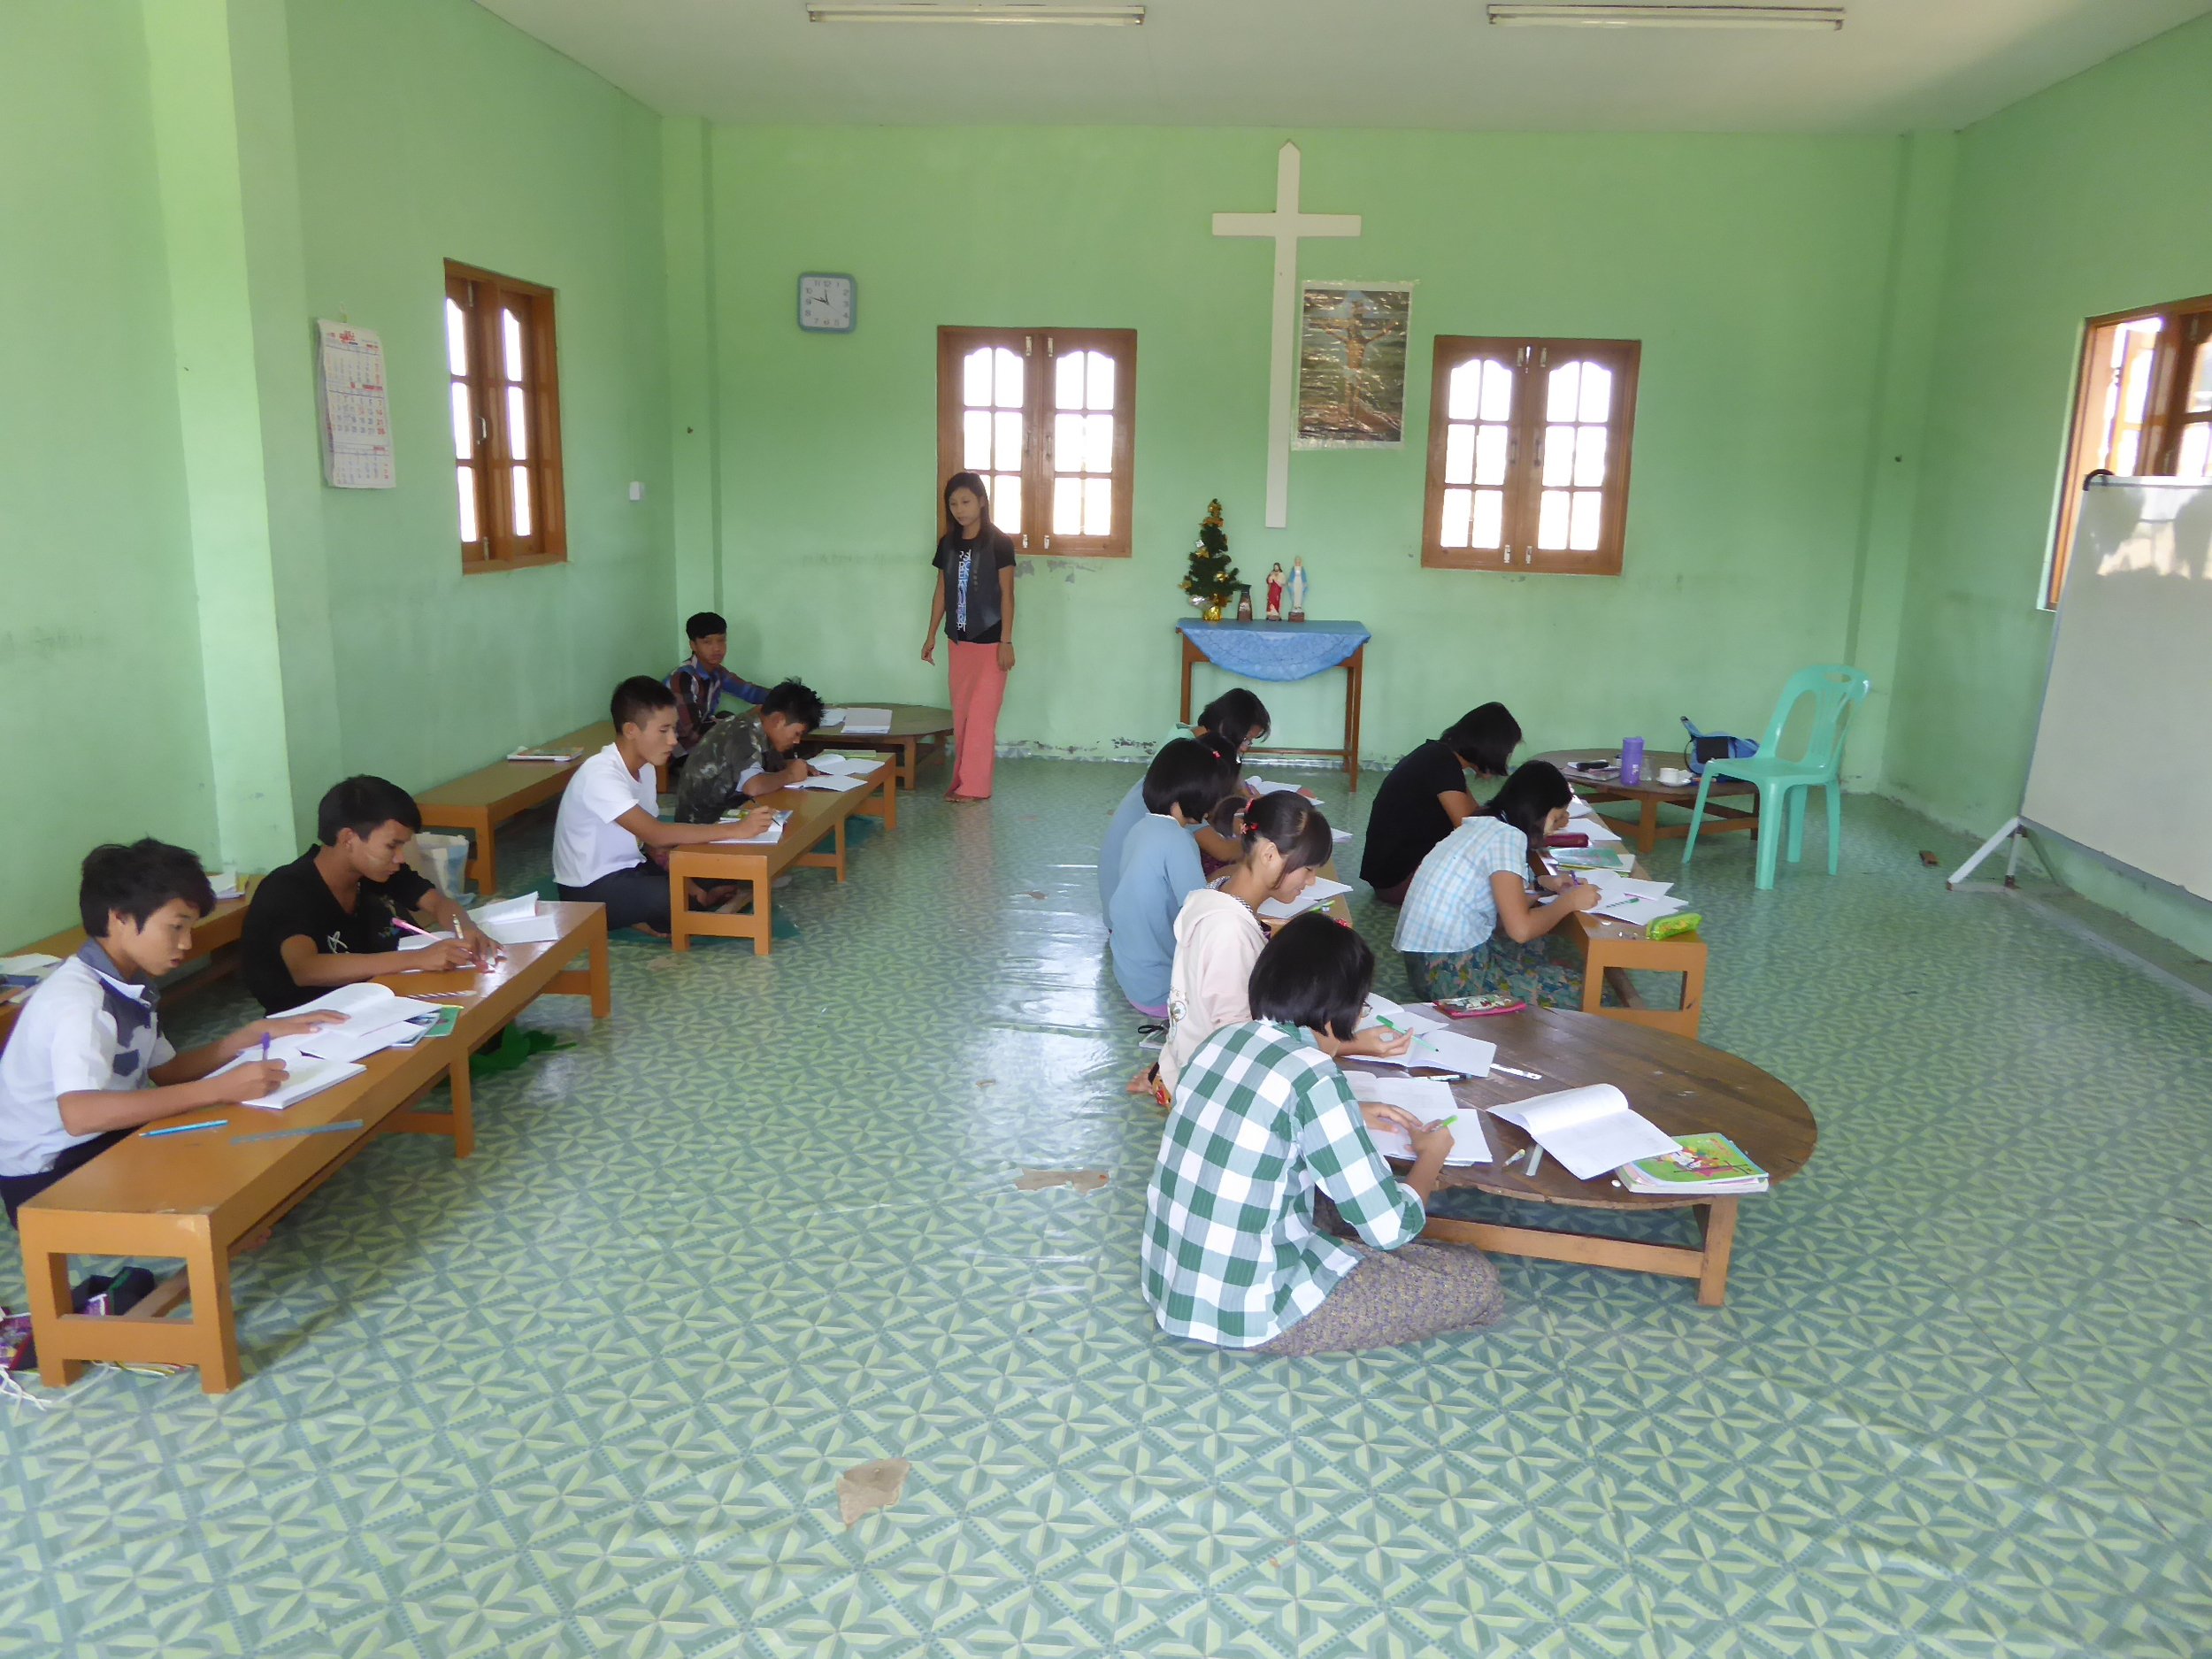 Children in the Christian study room (there is also a Buddhist study room) at the Dream Train orphanage outside Yangon, Myanmar.